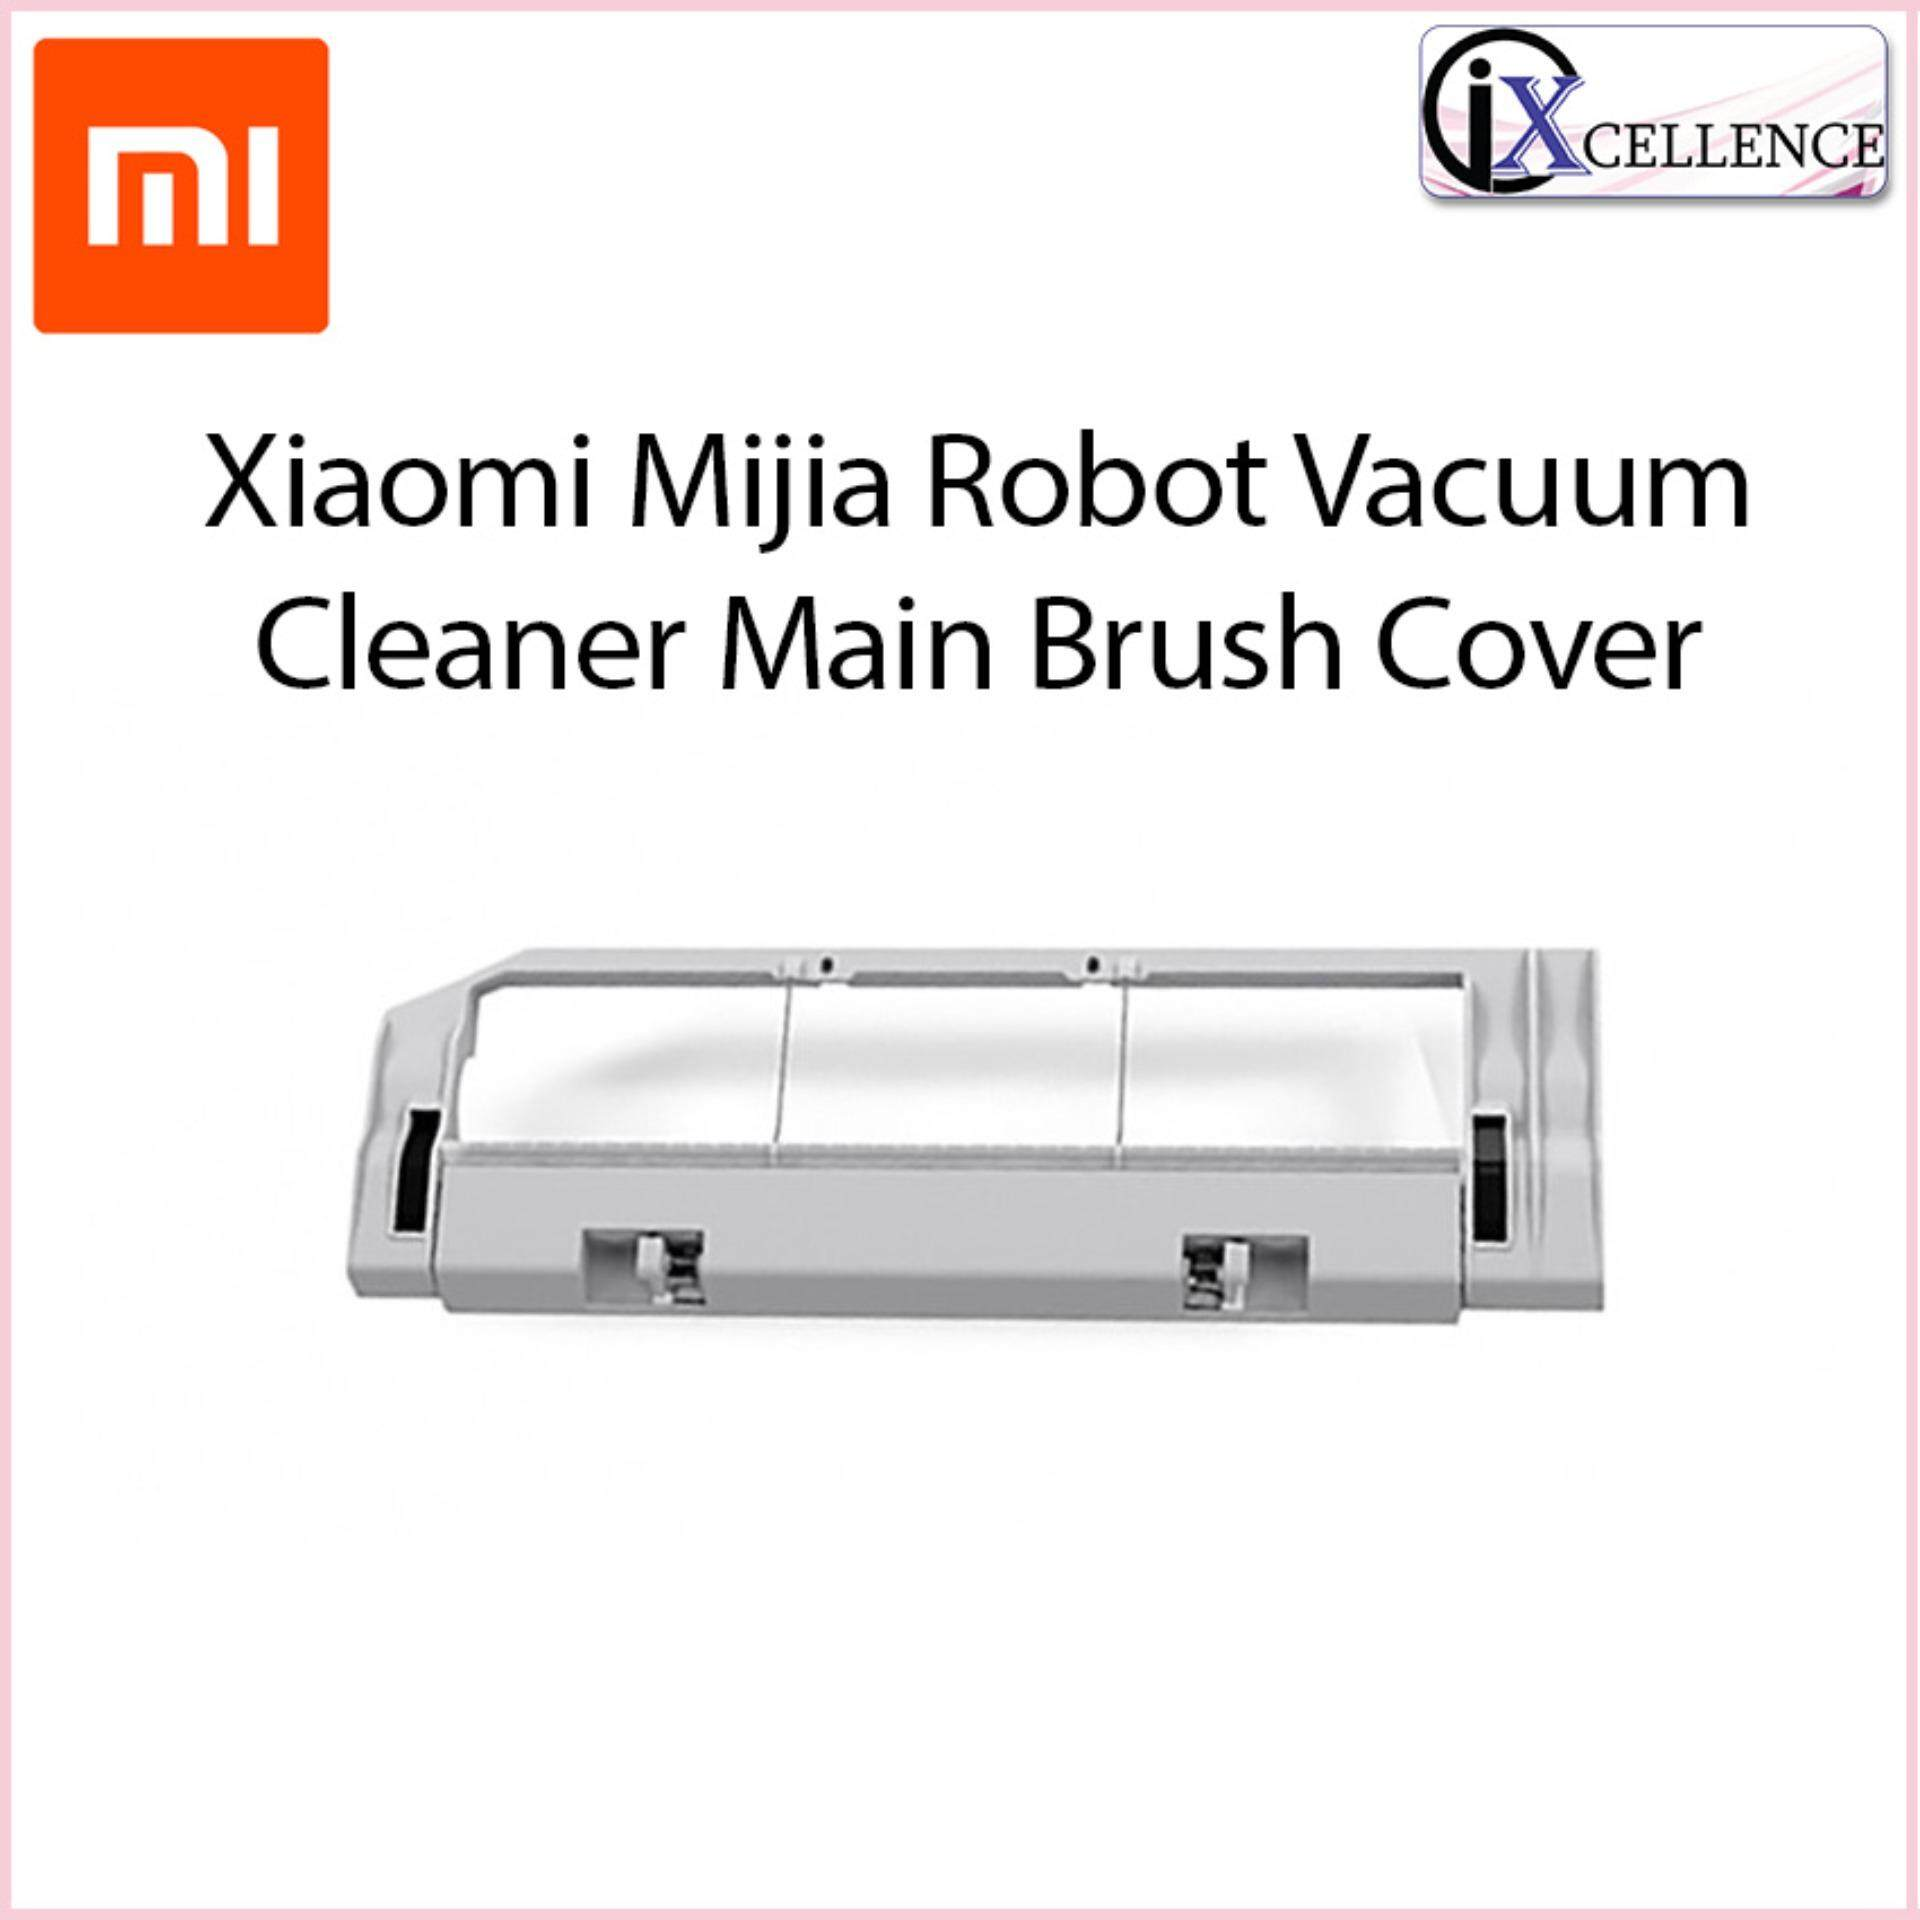 [IX] Xiaomi Mijia Robot Vacuum Cleaner Main Brush Cover (Grey)